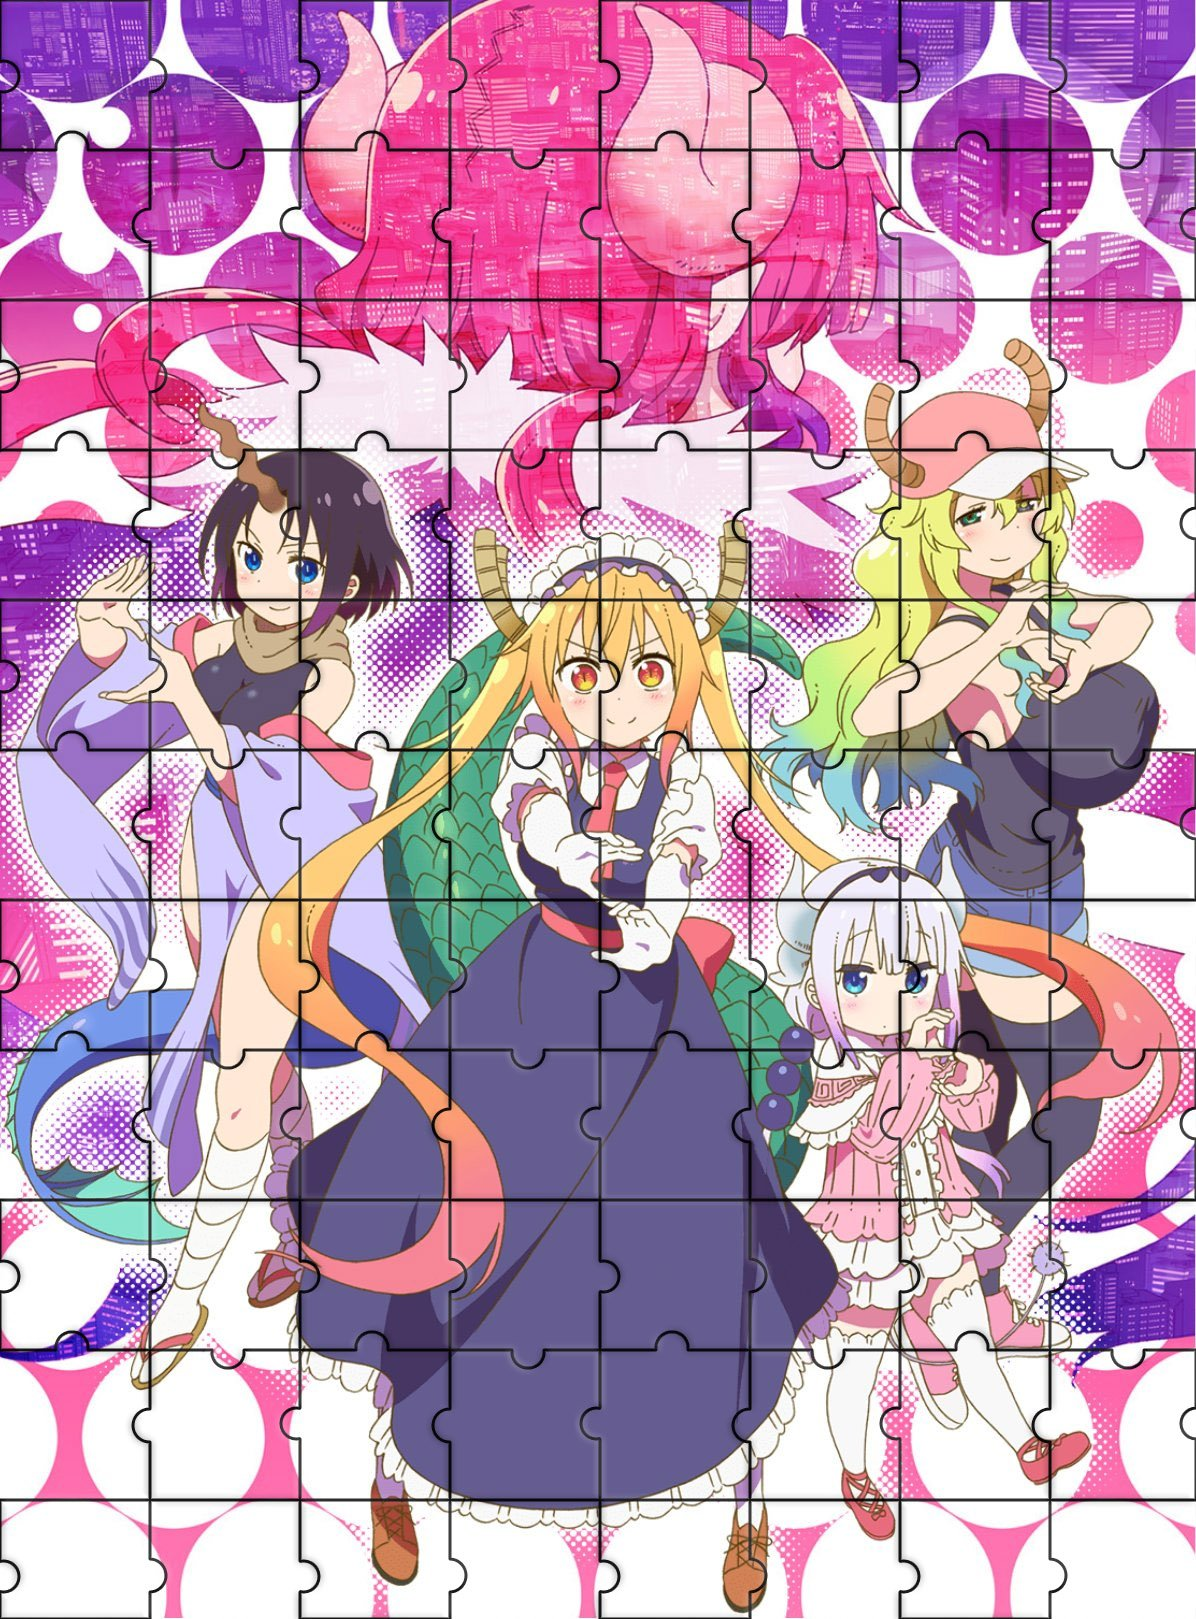 Miss Kobayashi's Dragon Maid 500/1000 Pieces Puzzle Jigsaw Toys Kids Adults Educational Intellectual Decompressing Fun Family Game